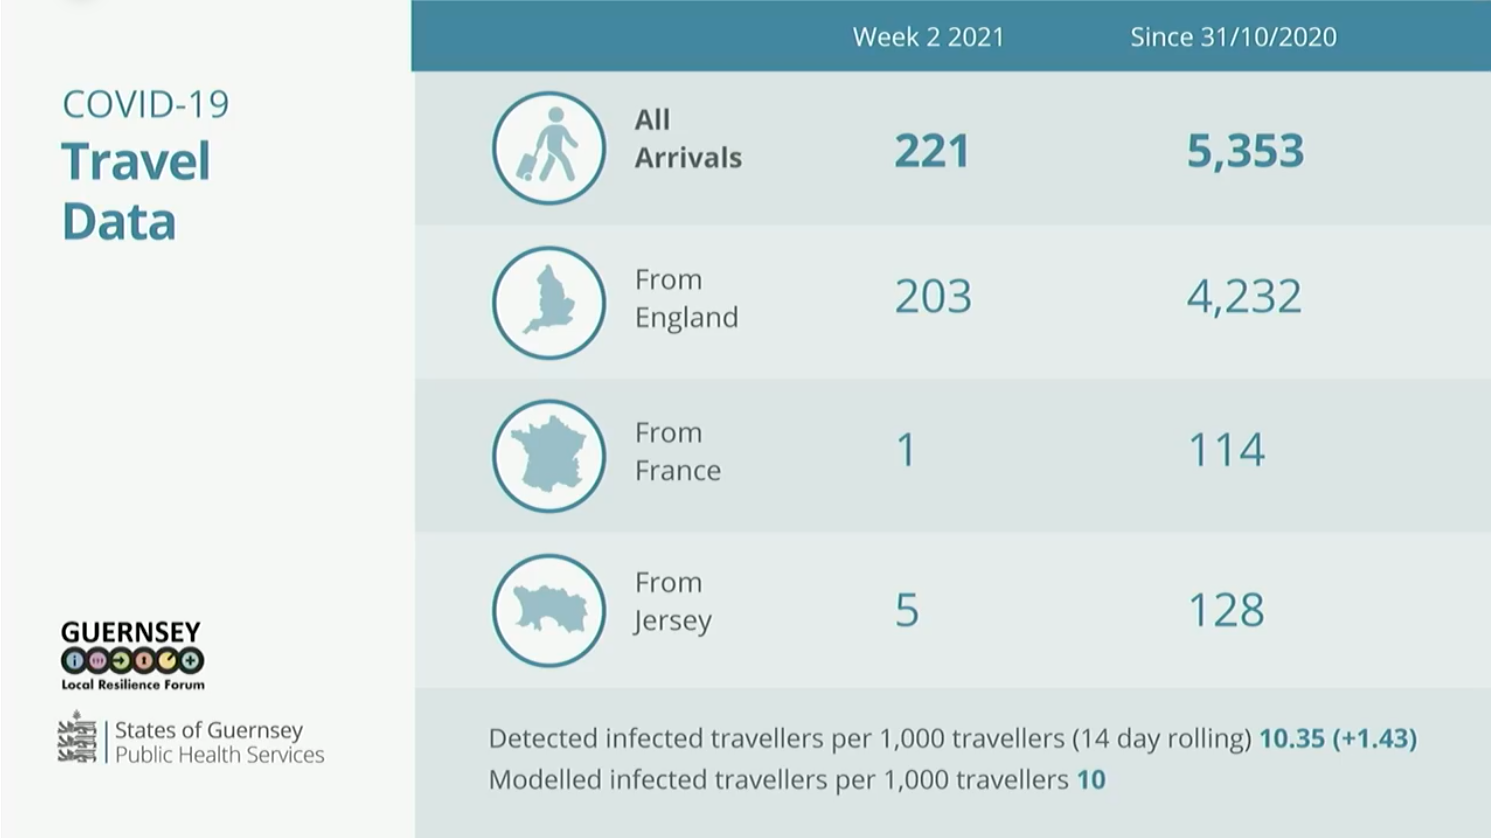 covid briefing slide 22.01.21 travel data